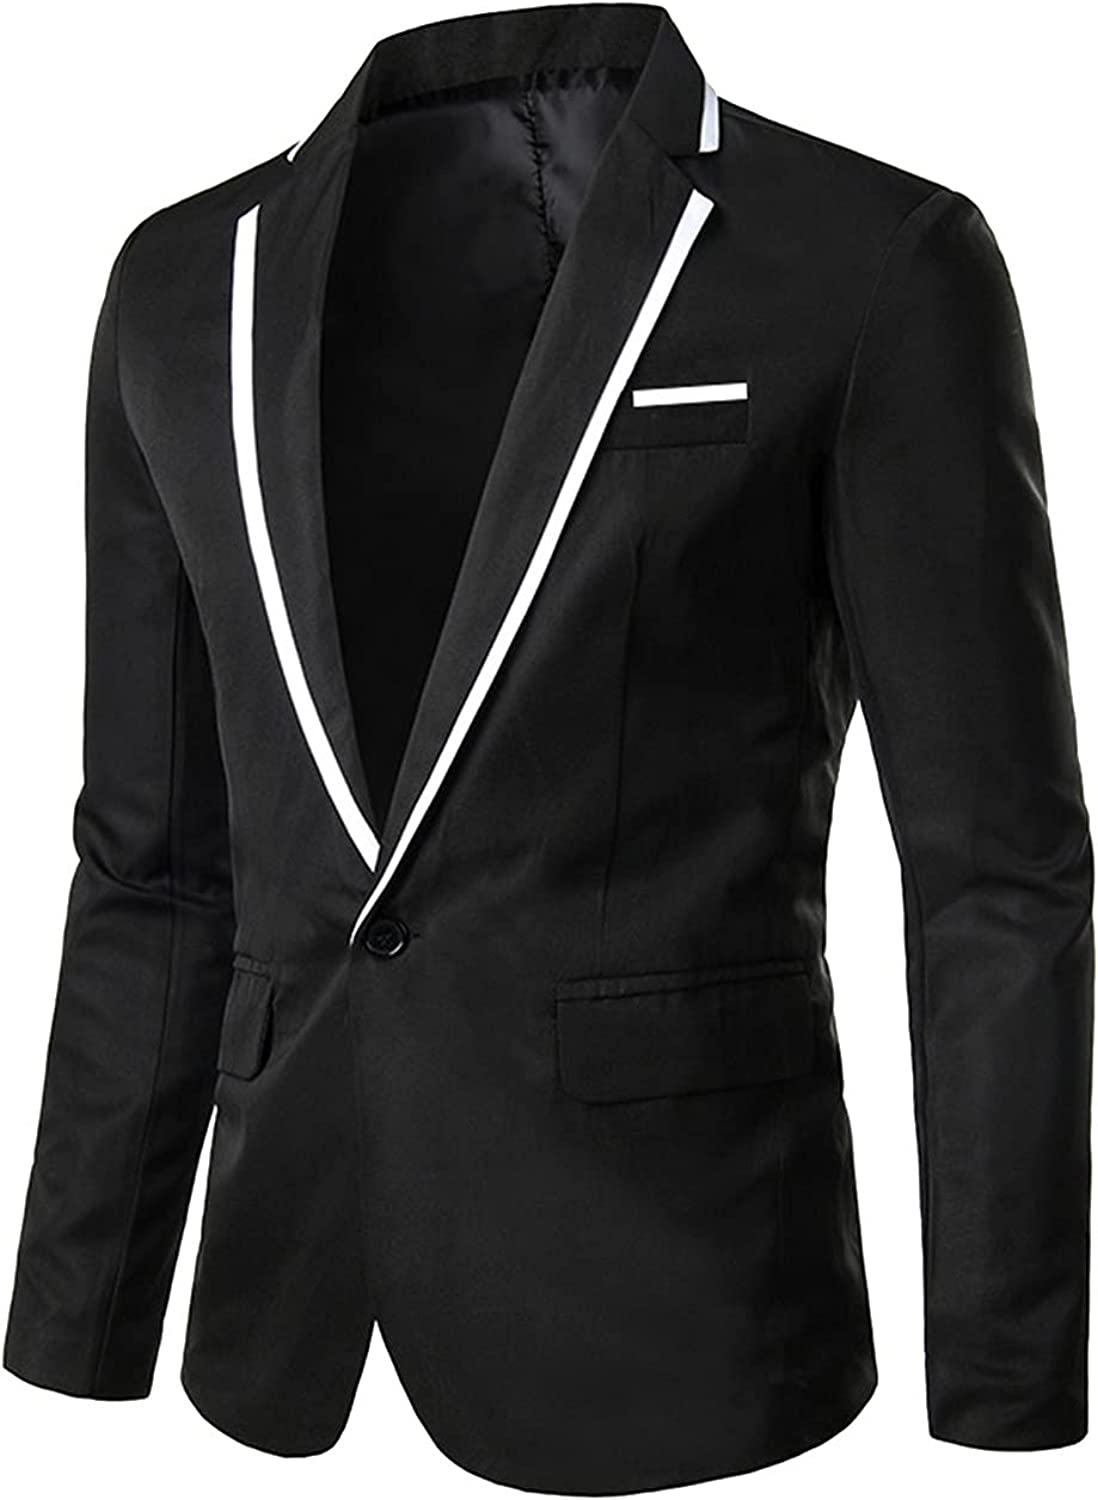 Premium Suit Industry No. 1 for Men's Save money Fashion Business Casual Youth Slim Blazer